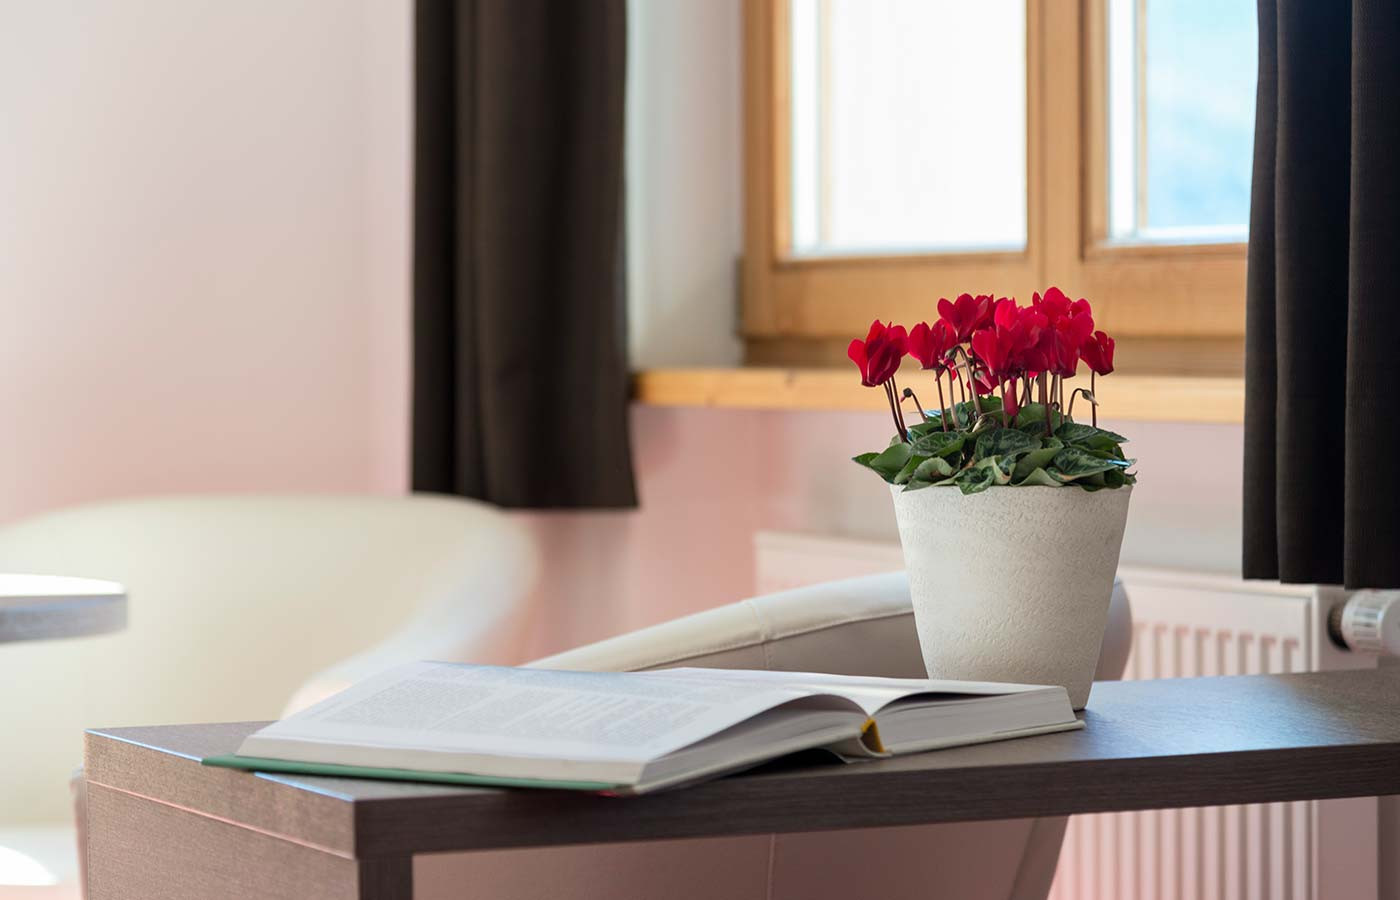 Vase of flowers and book open on a table in one of the rooms at the Waldheim's